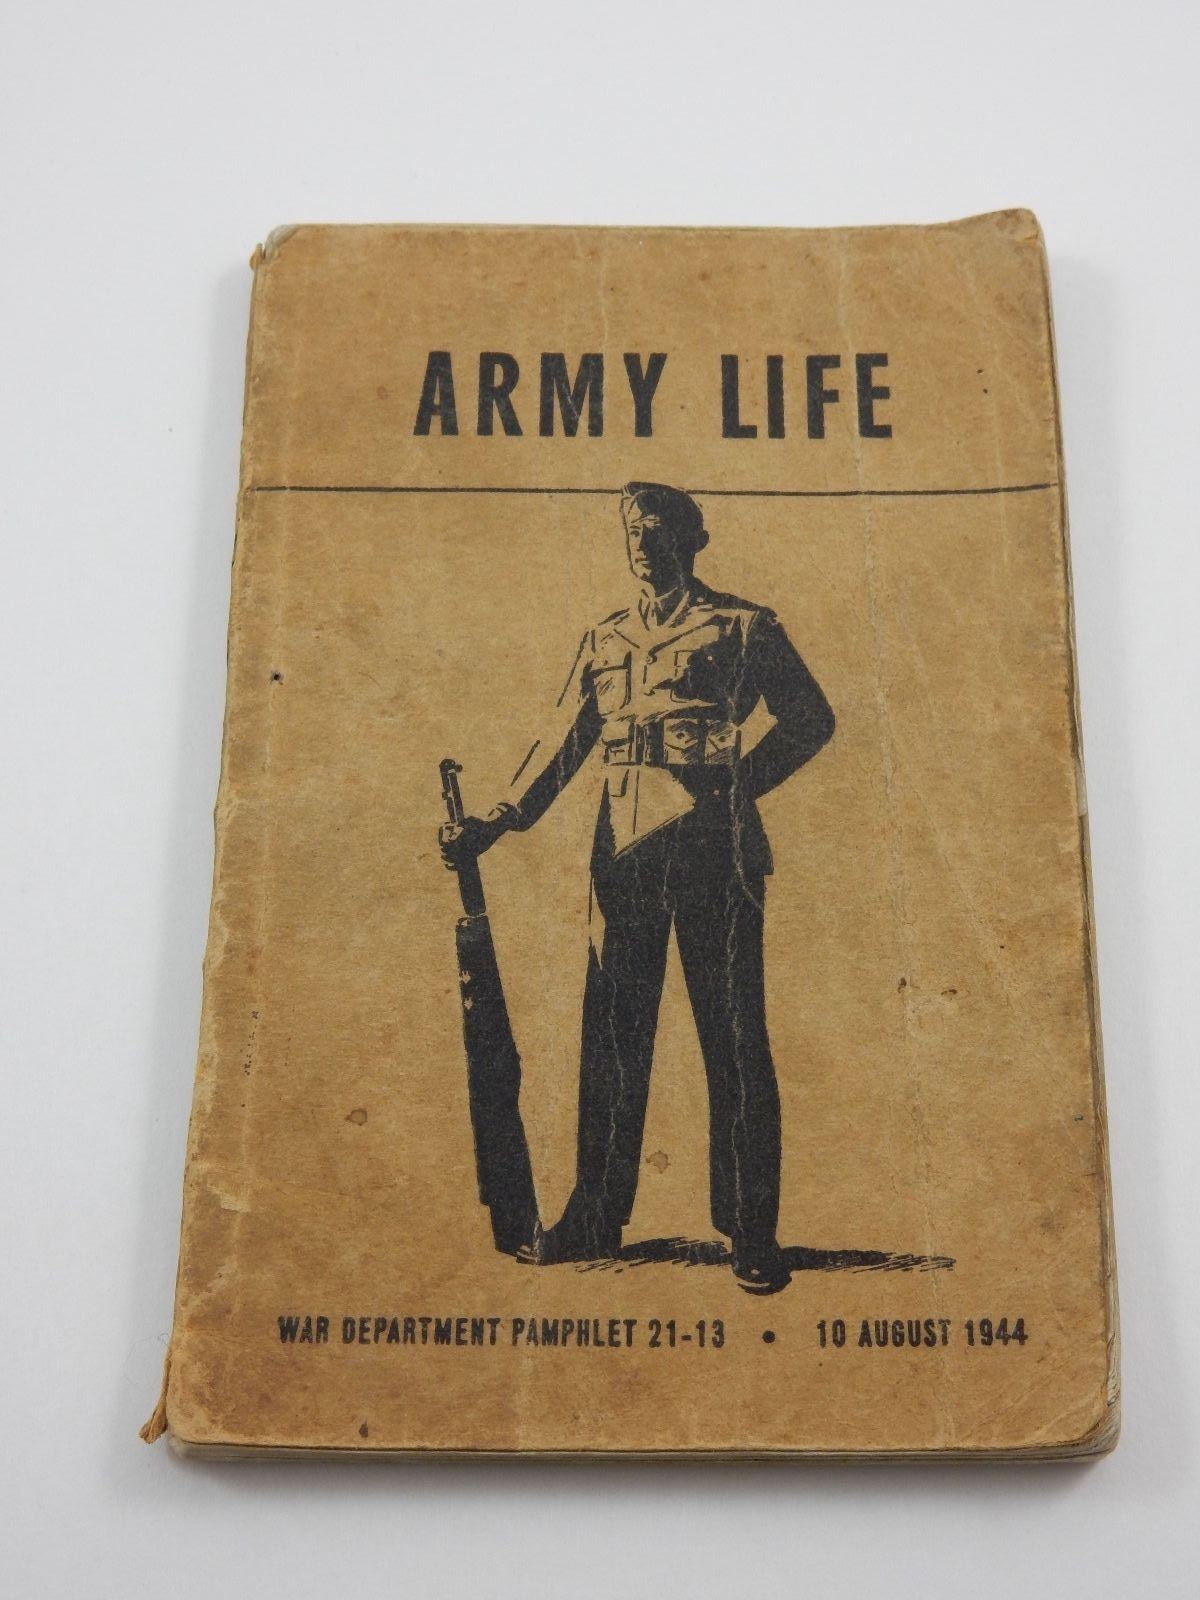 US World War II War Department Pamphlet 21-13: Army Life 10 August 1944